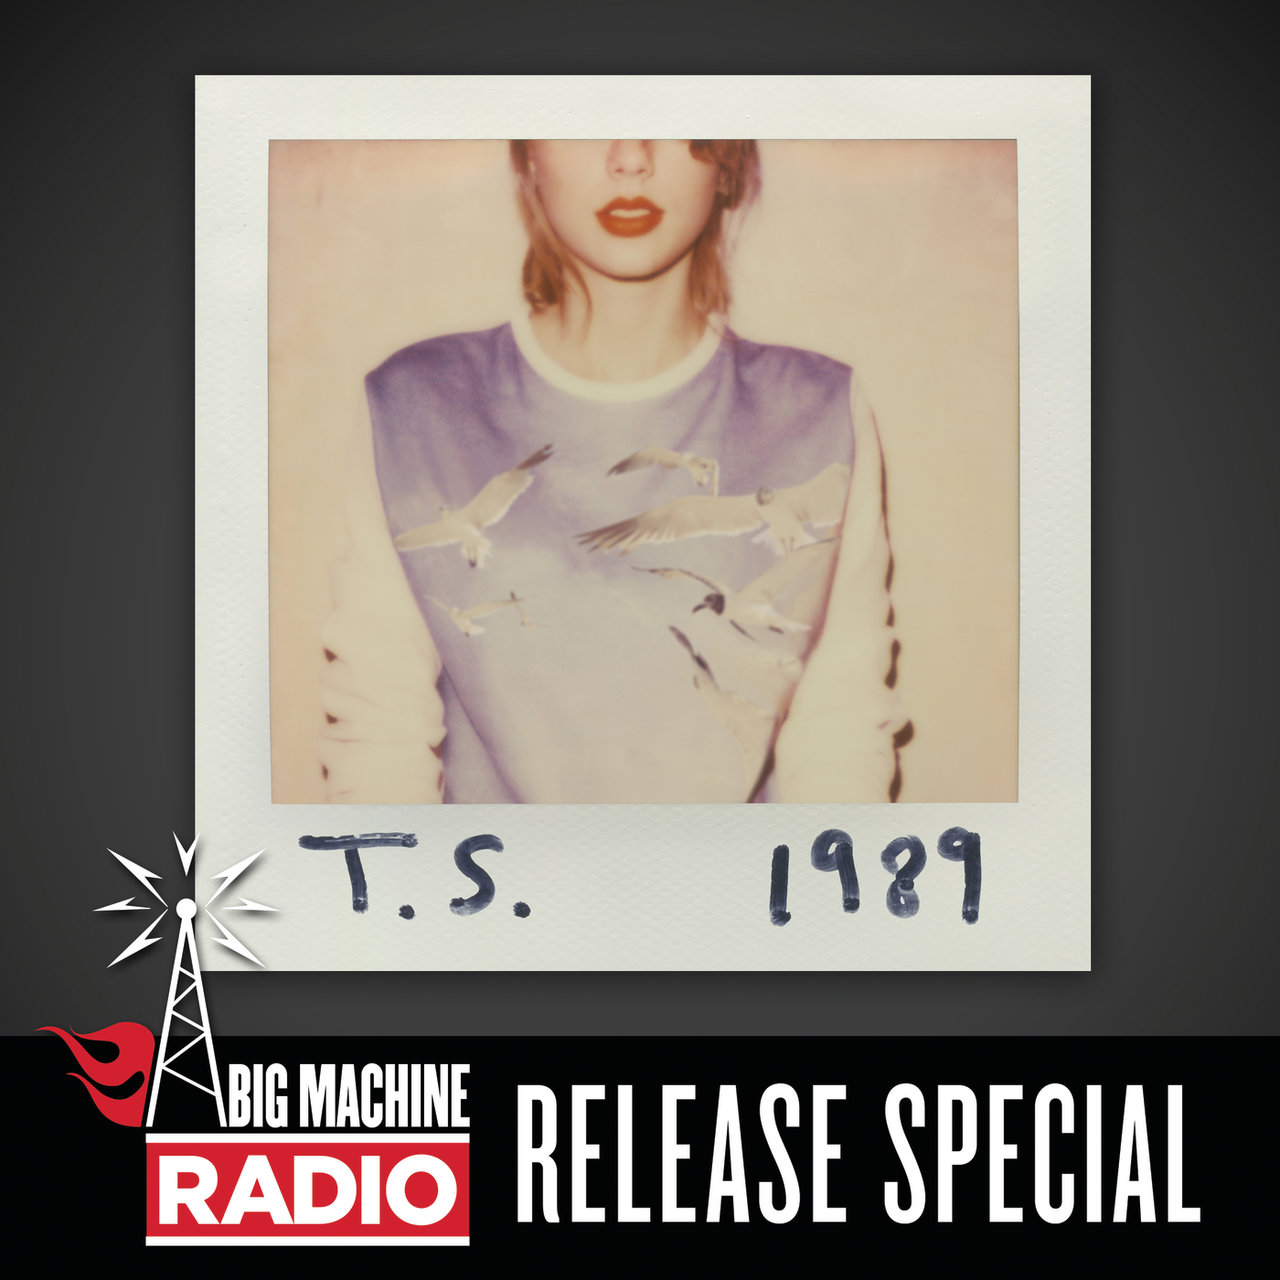 1989 (Big Machine Radio Release Special)